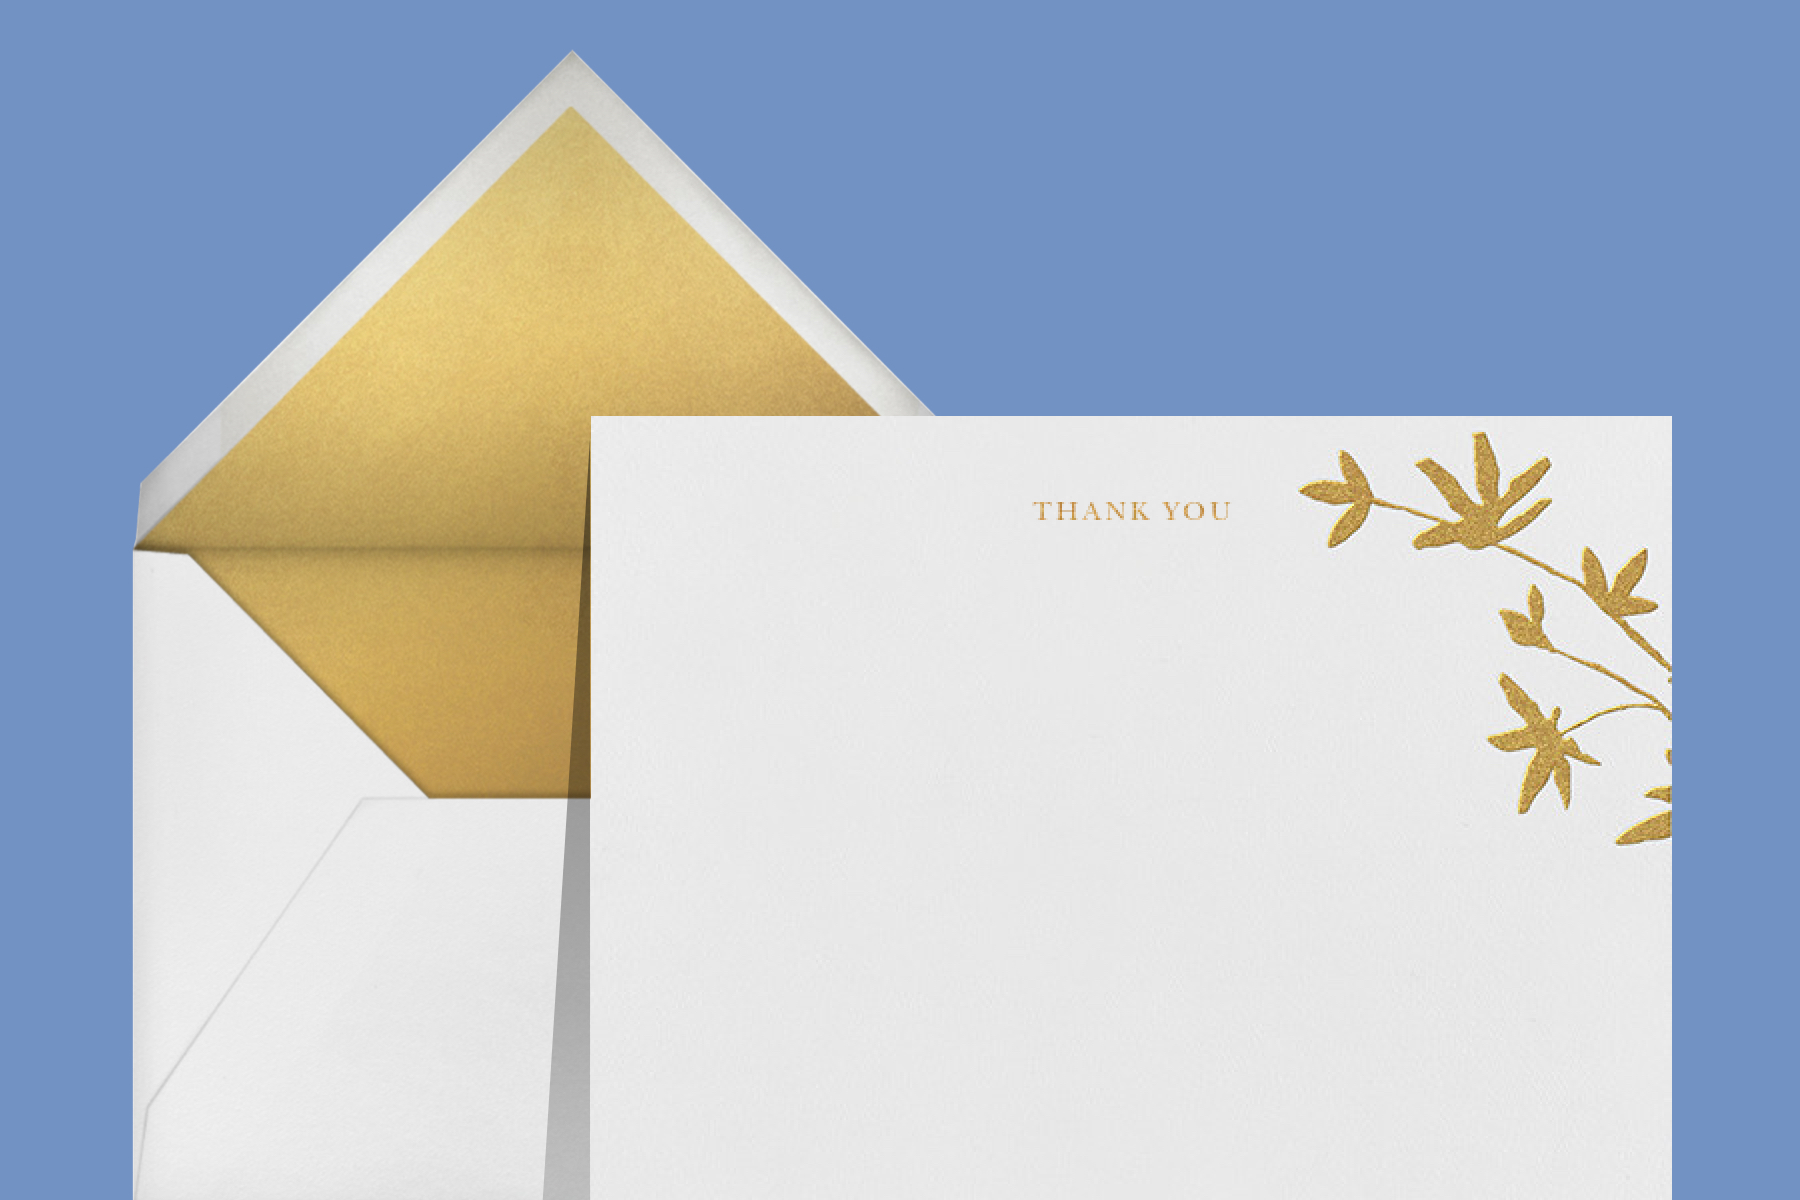 """""""Oliver Park I (Stationery)"""" thank you card by kate spade new york for Paperless Post. The white card features the words """"thank you"""" and gold palm trees."""